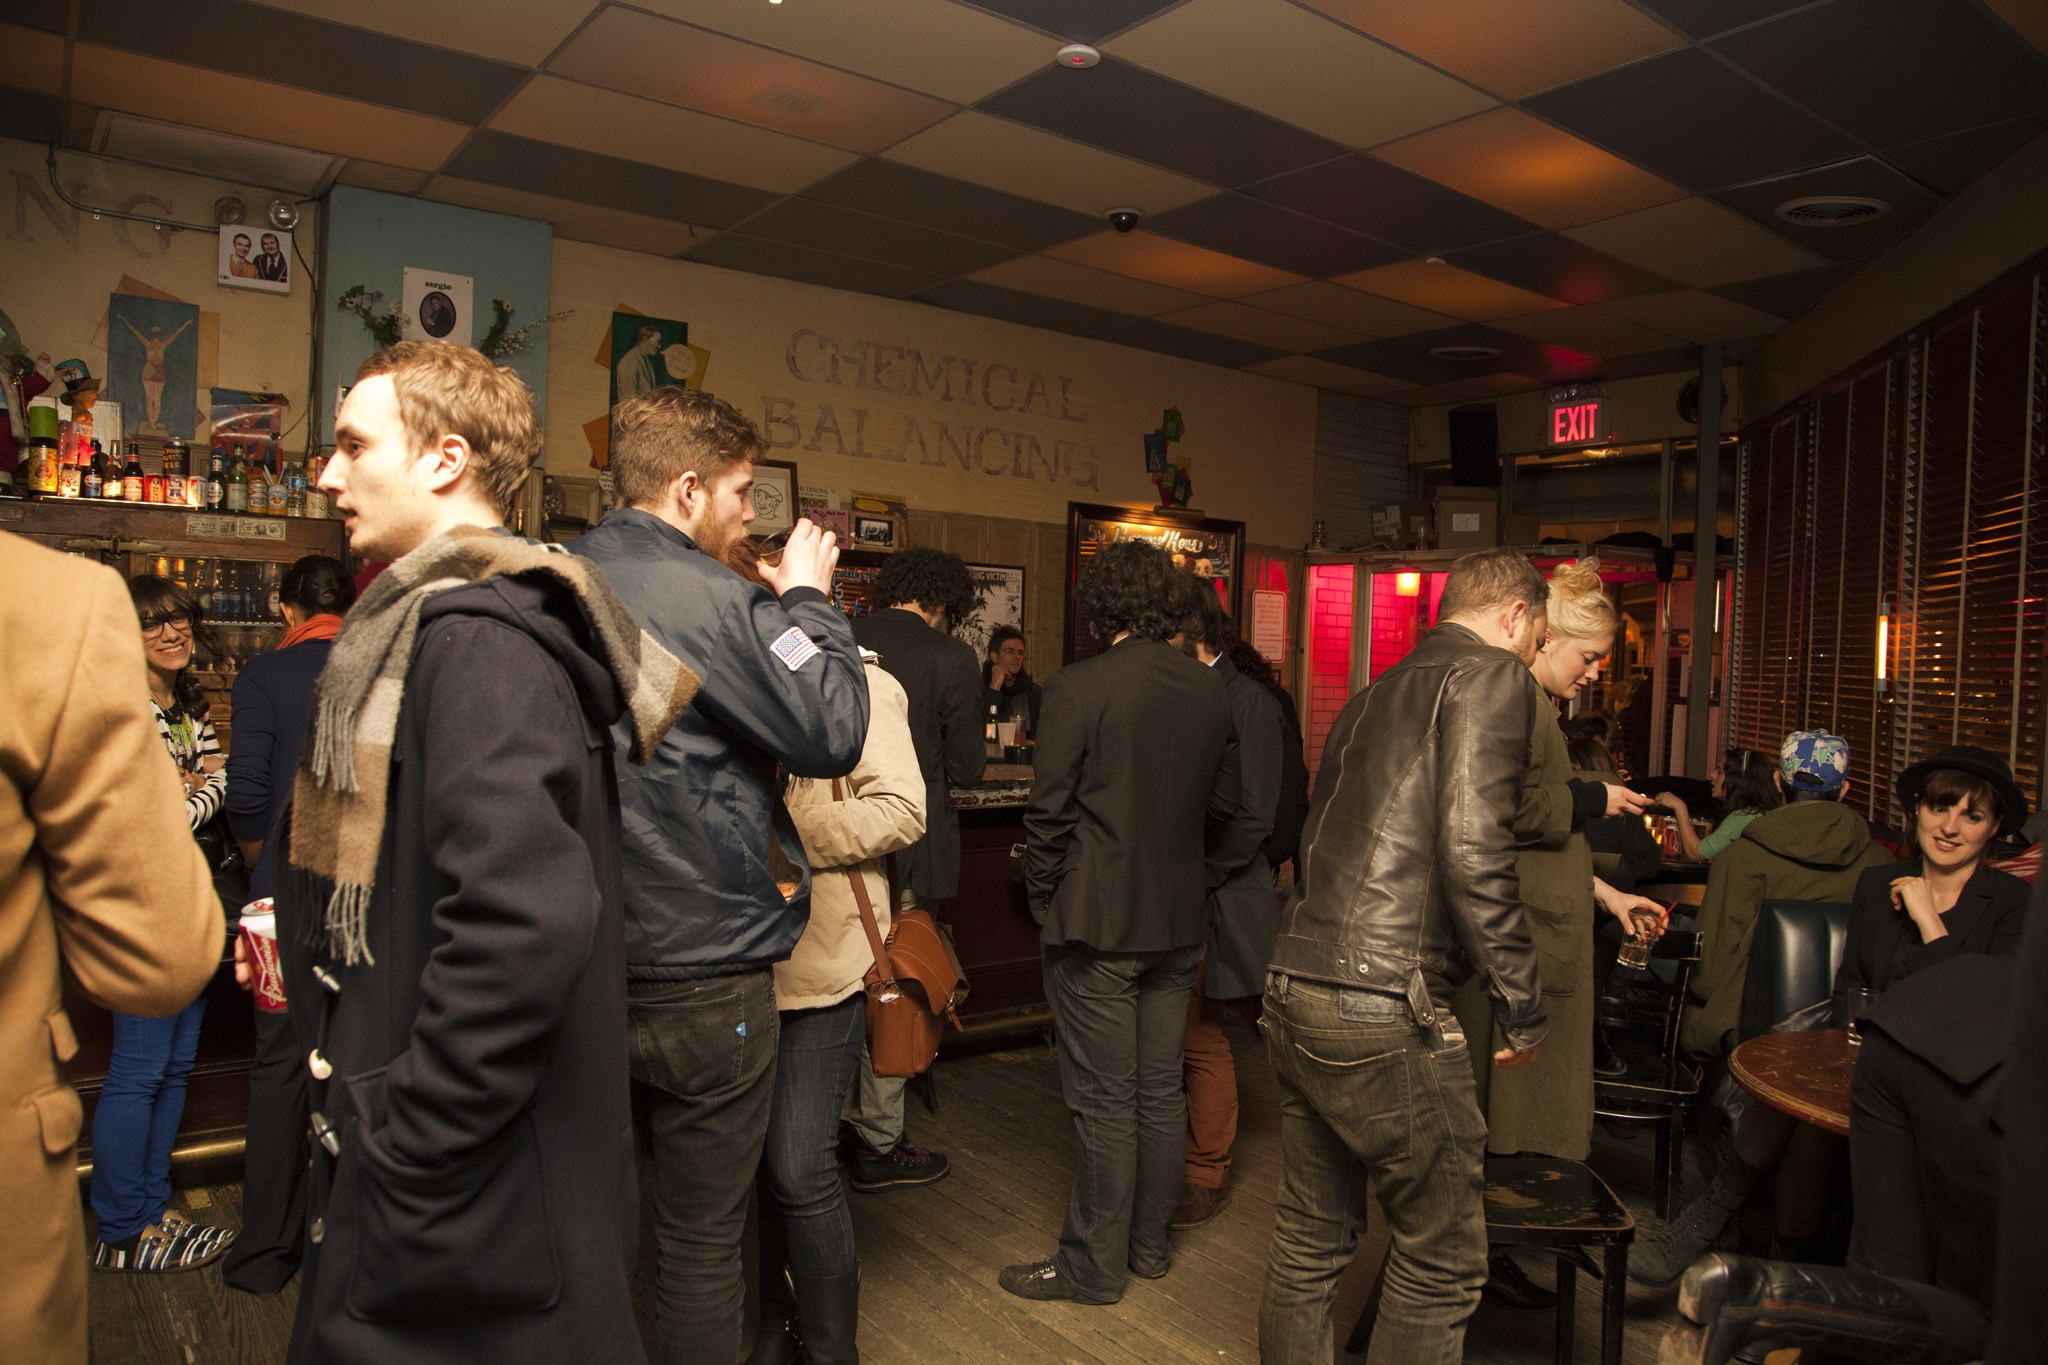 The 10 best hookup bars in NYC